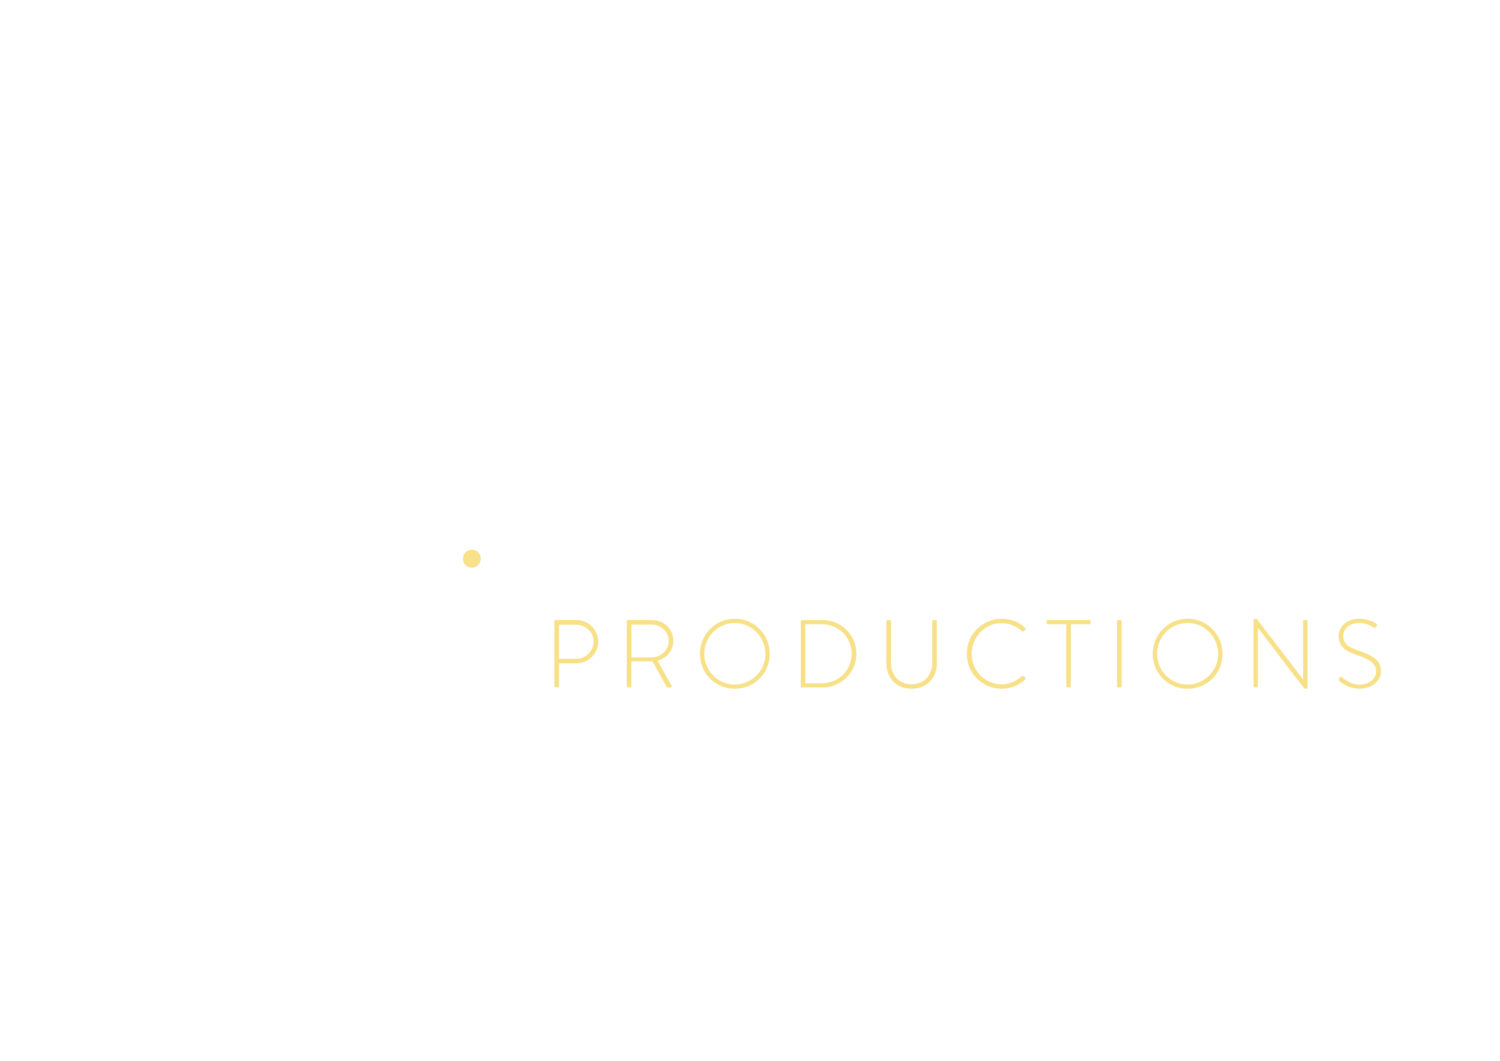 Zakouski Productions